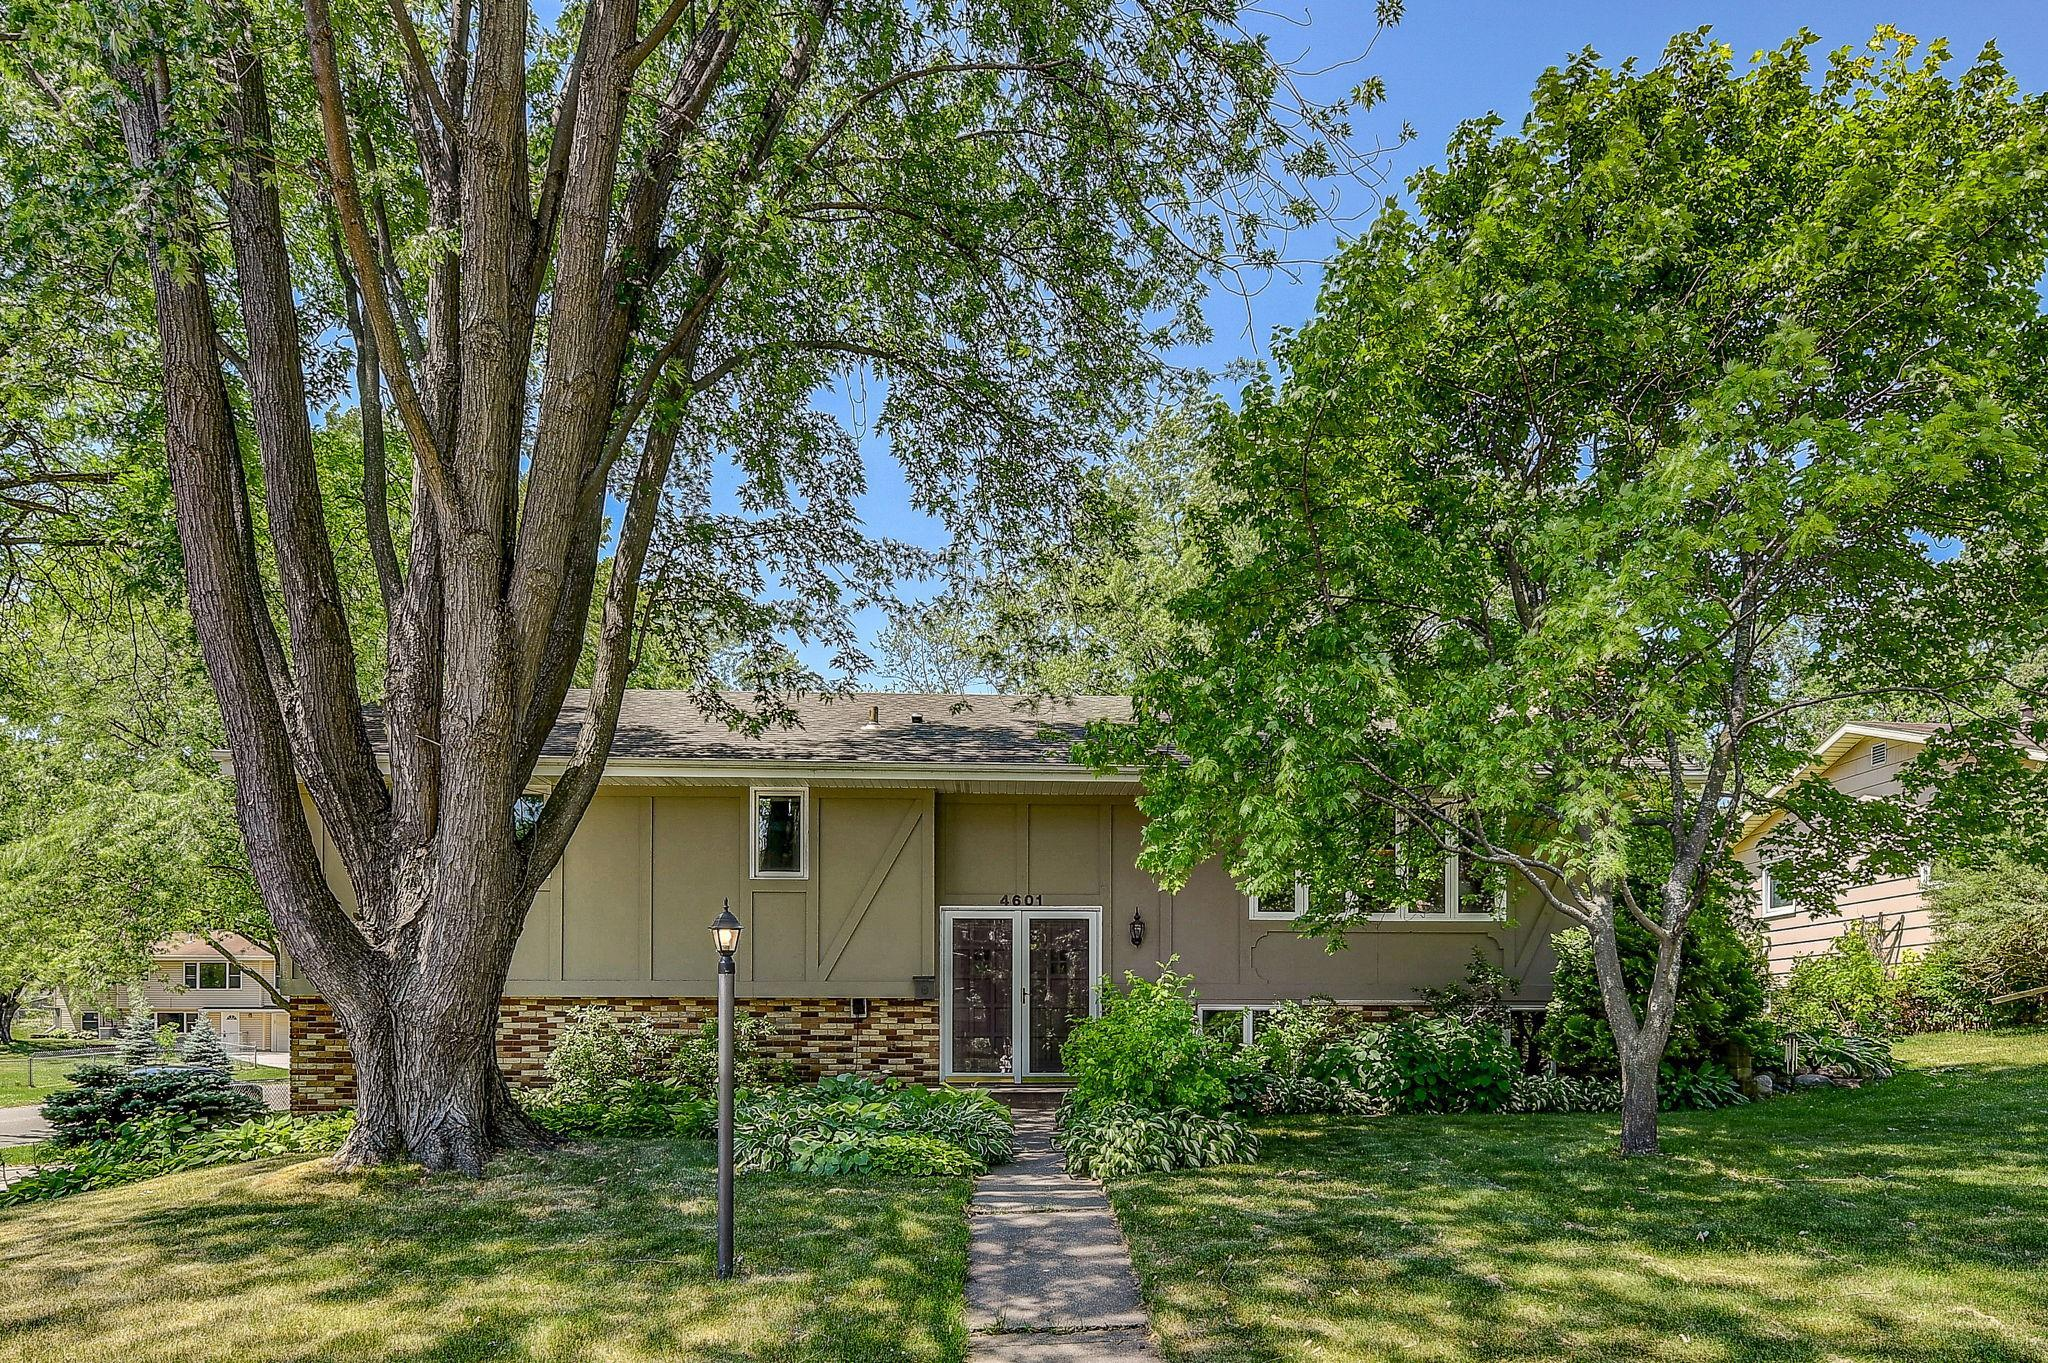 4601 Nevada N Property Photo - New Hope, MN real estate listing